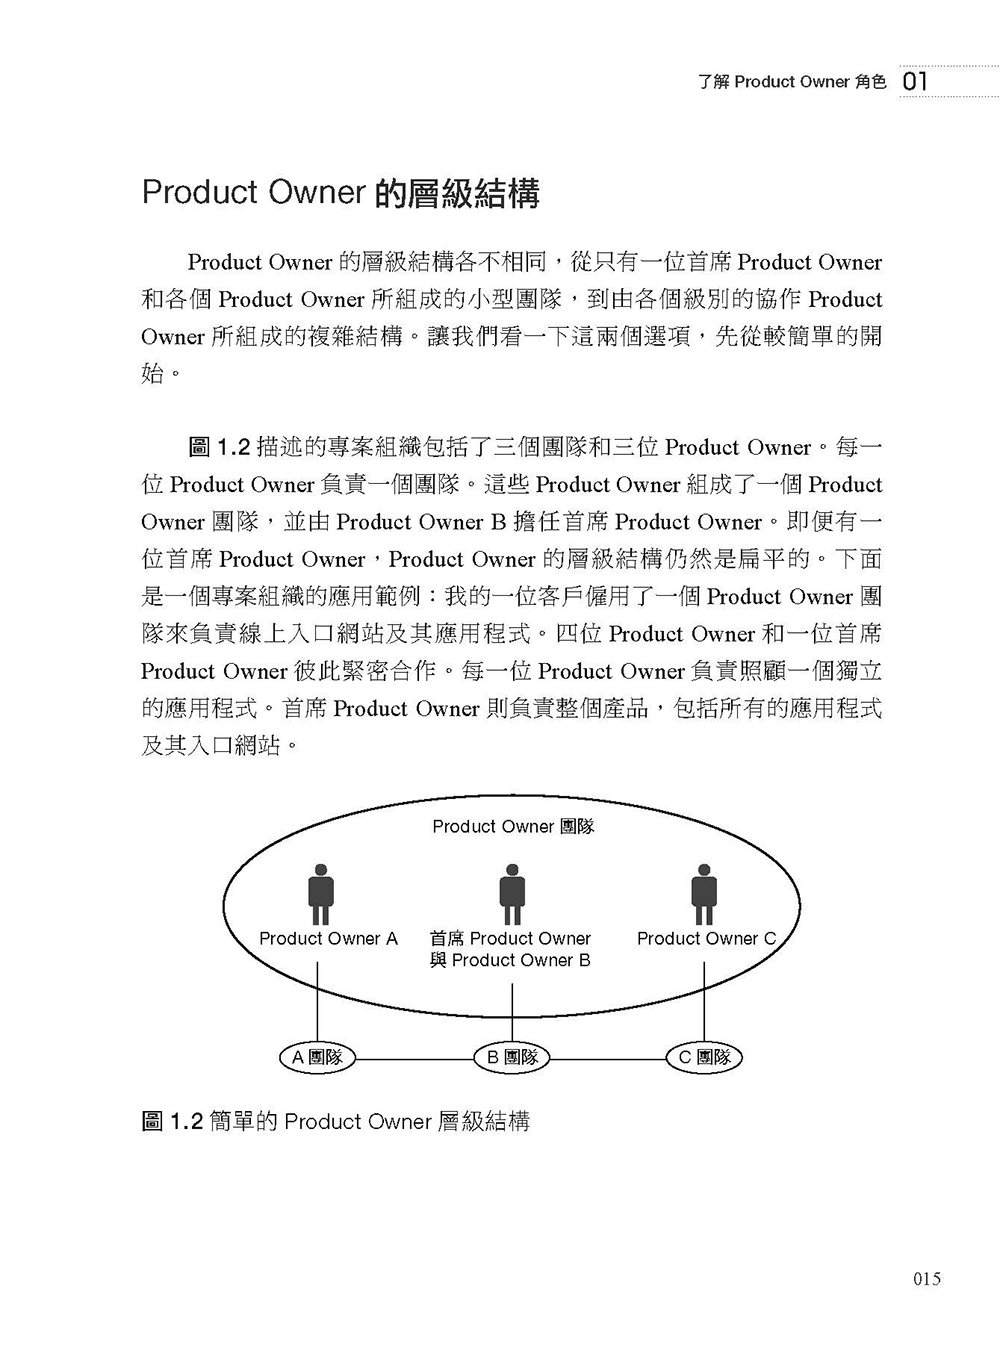 Scrum 敏捷產品管理:打造客戶喜愛的產品 (Agile Product Management with Scrum: Creating Products that Customers Love)-preview-15